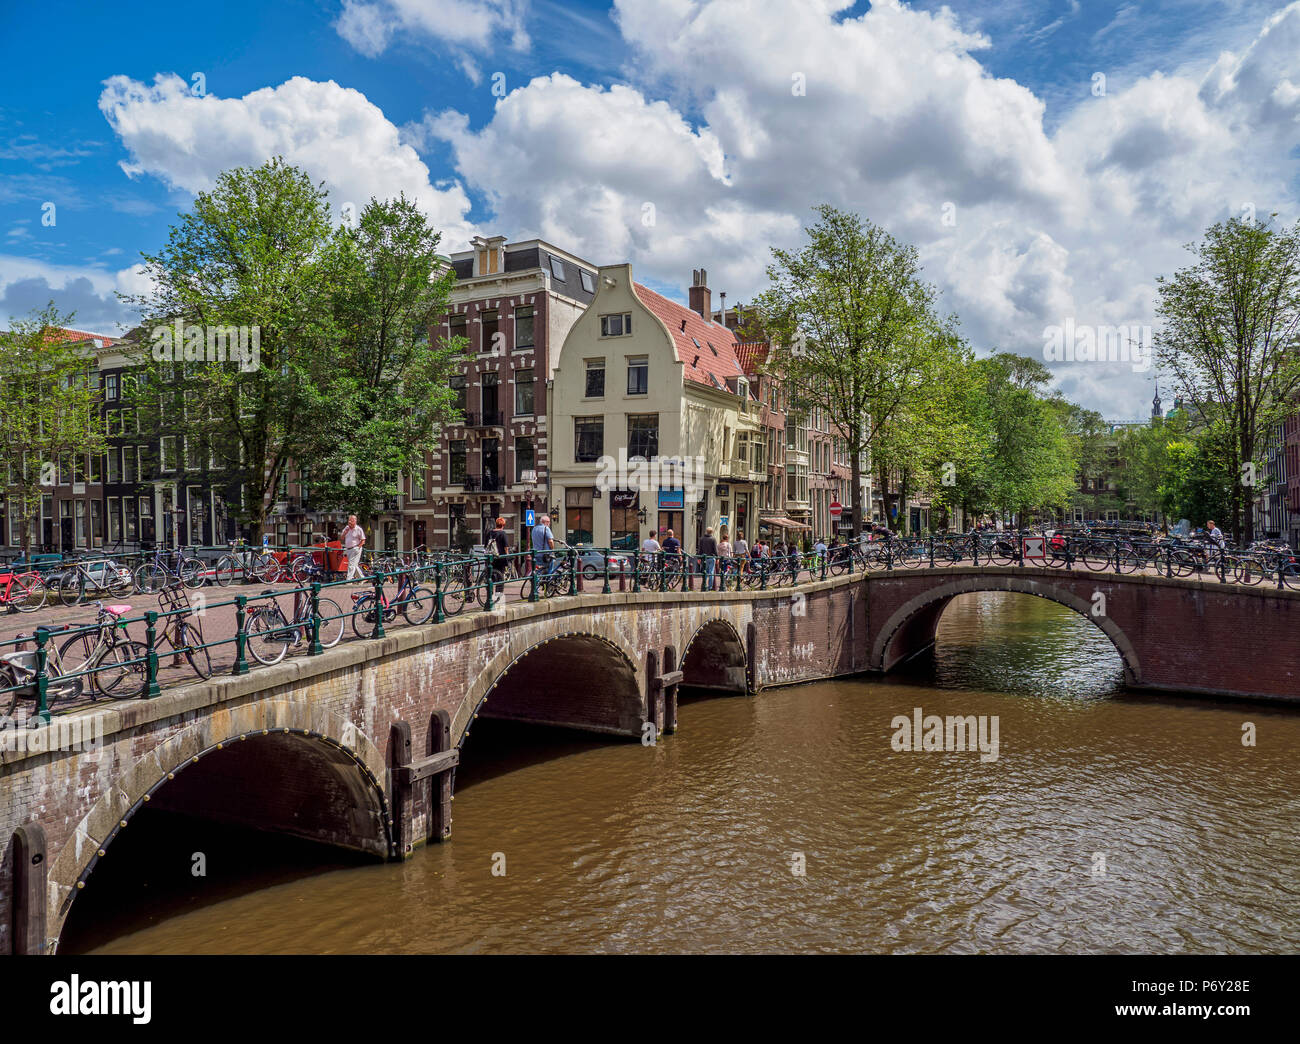 Keizersgracht and Leliegrach Canals and Bridges, Amsterdam, North Holland, The Netherlands Stock Photo